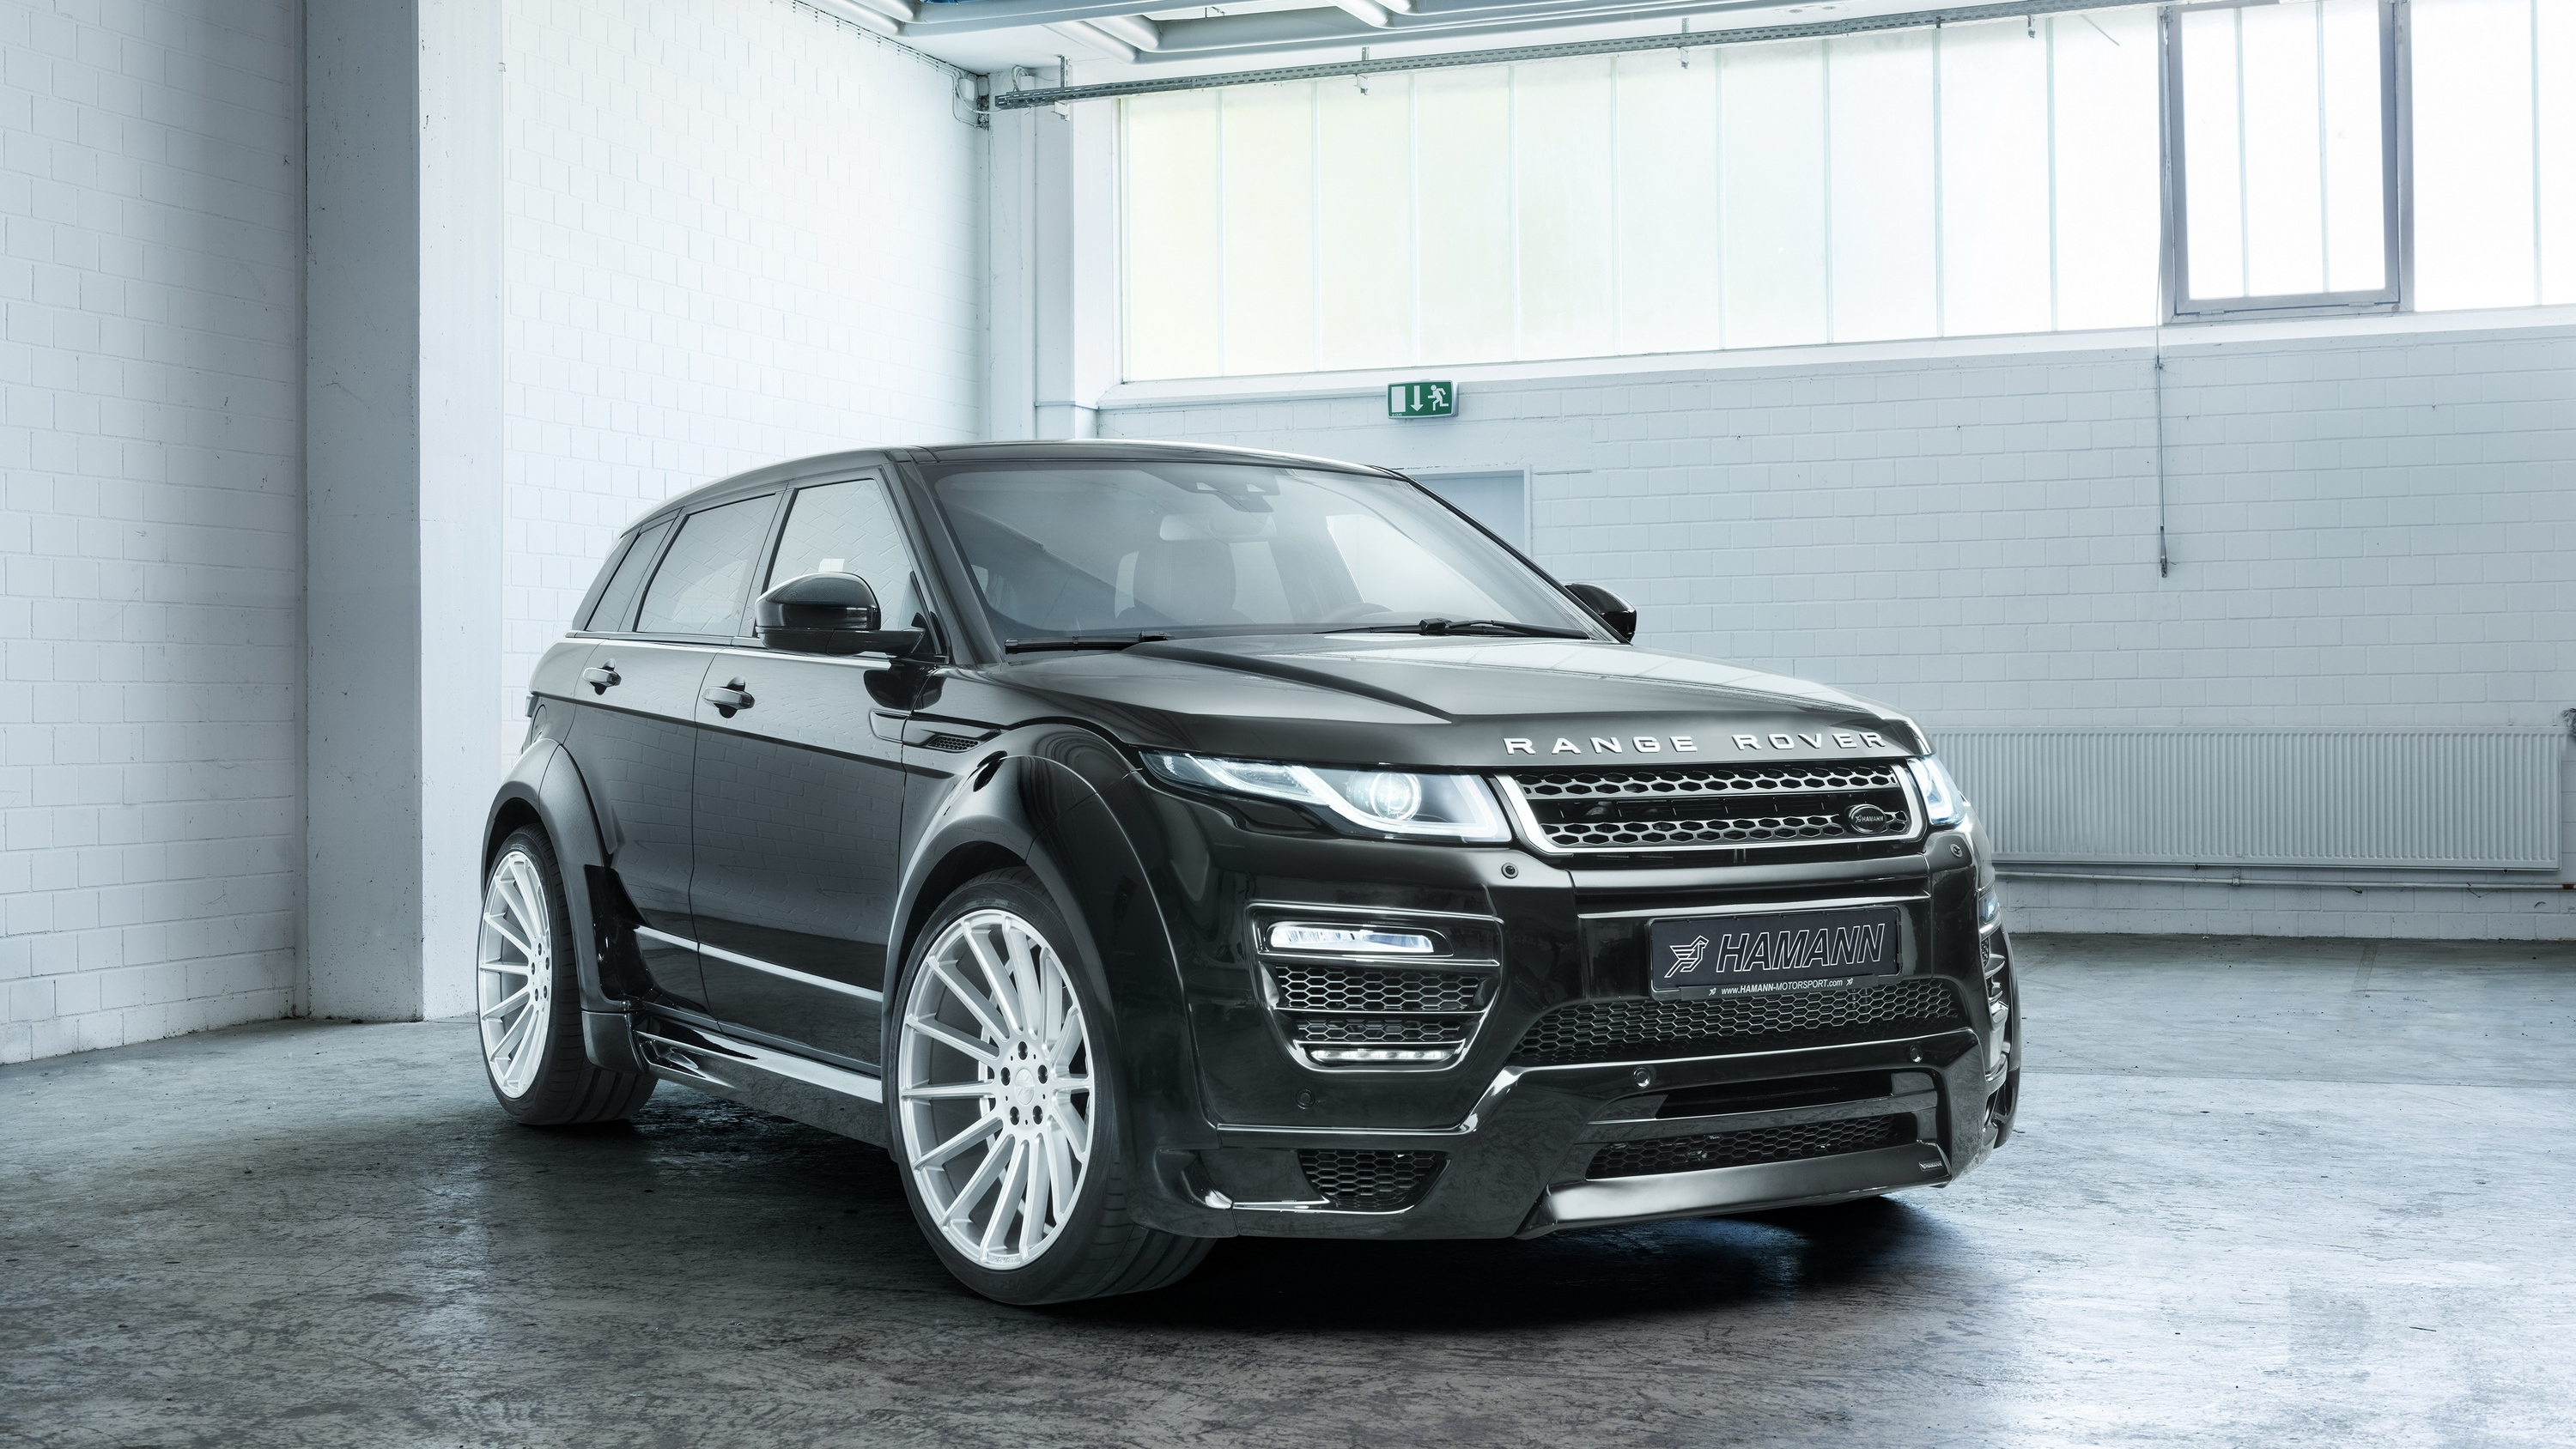 2016 range rover evoque by hamann review top speed. Black Bedroom Furniture Sets. Home Design Ideas